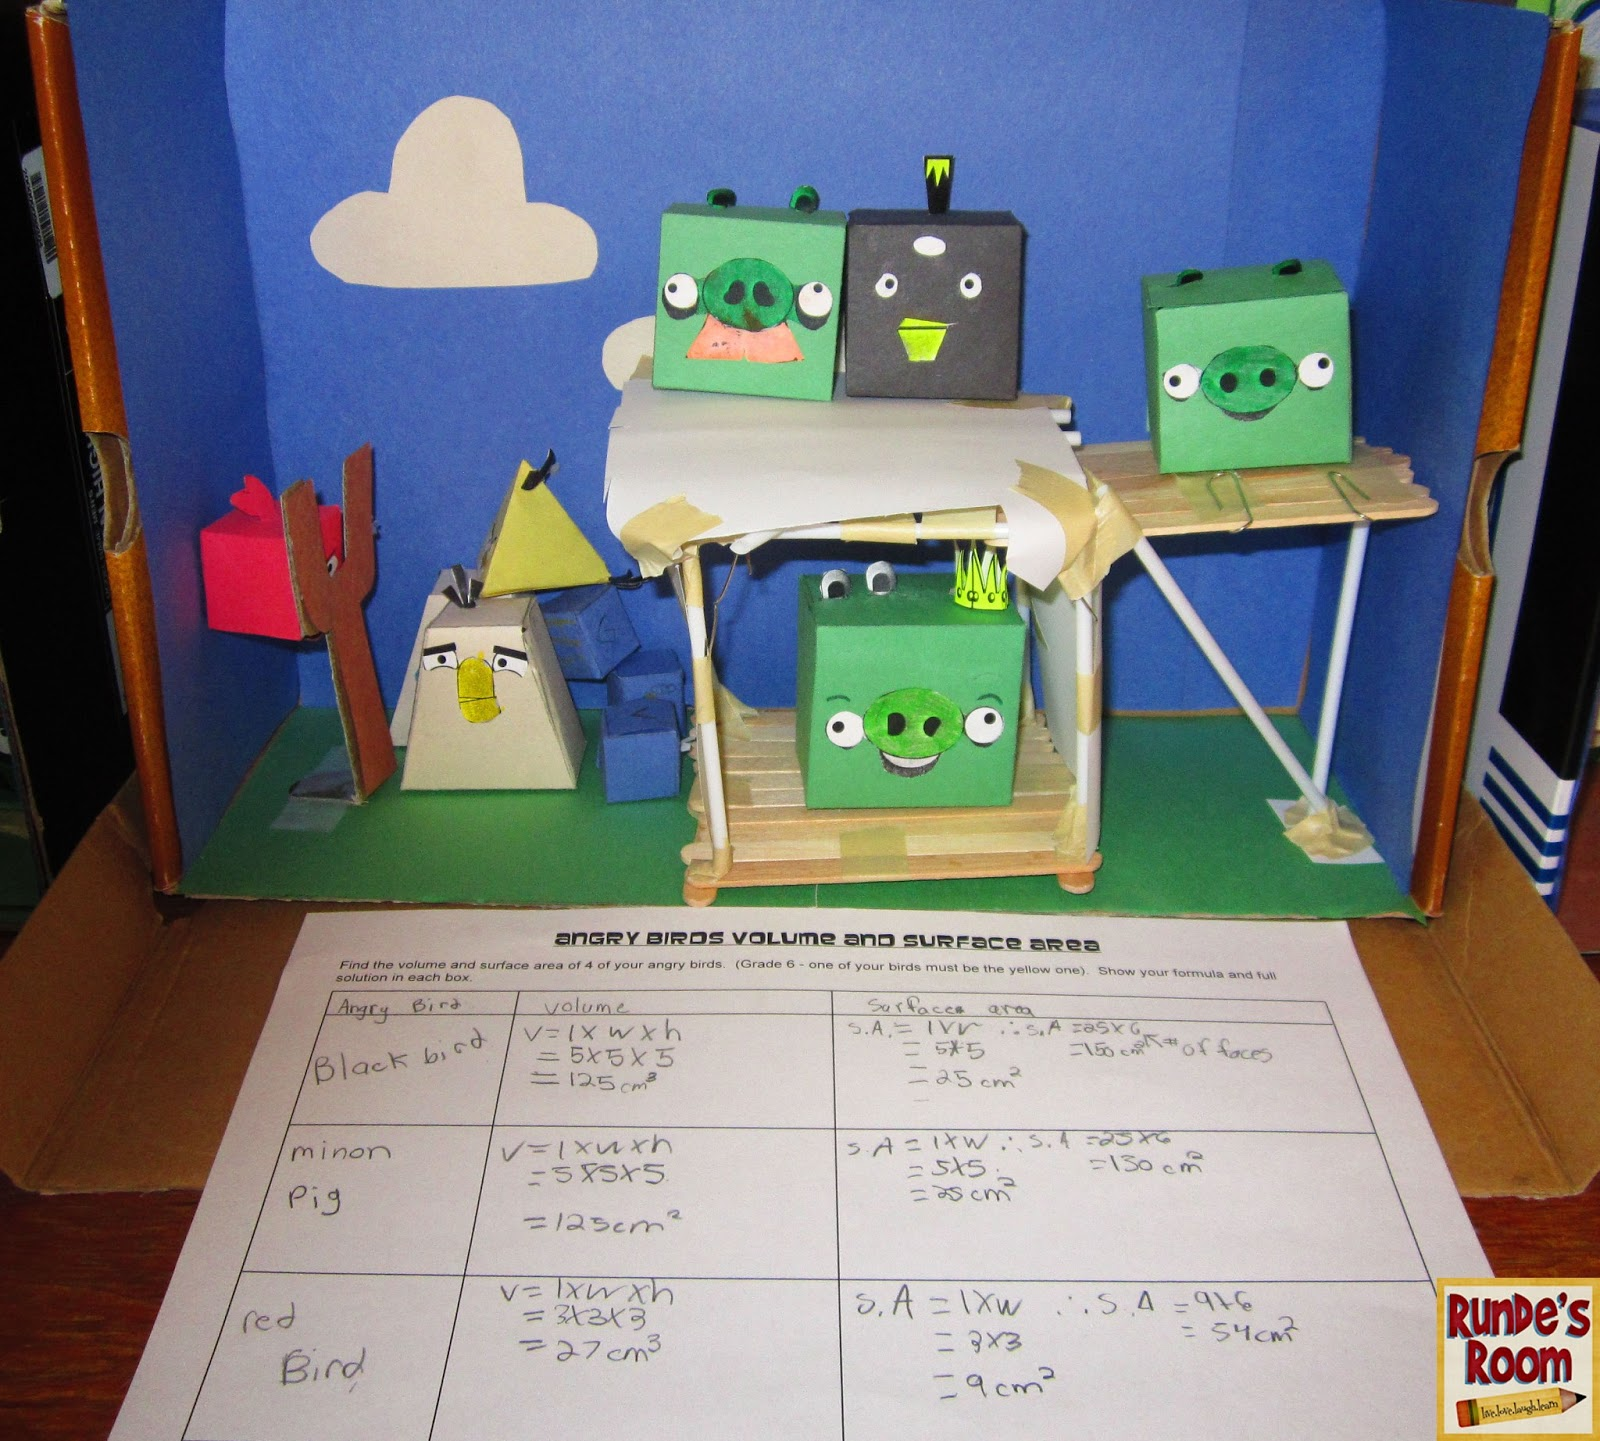 fa09a45538 Runde s Room  Angry Birds   Happy Students